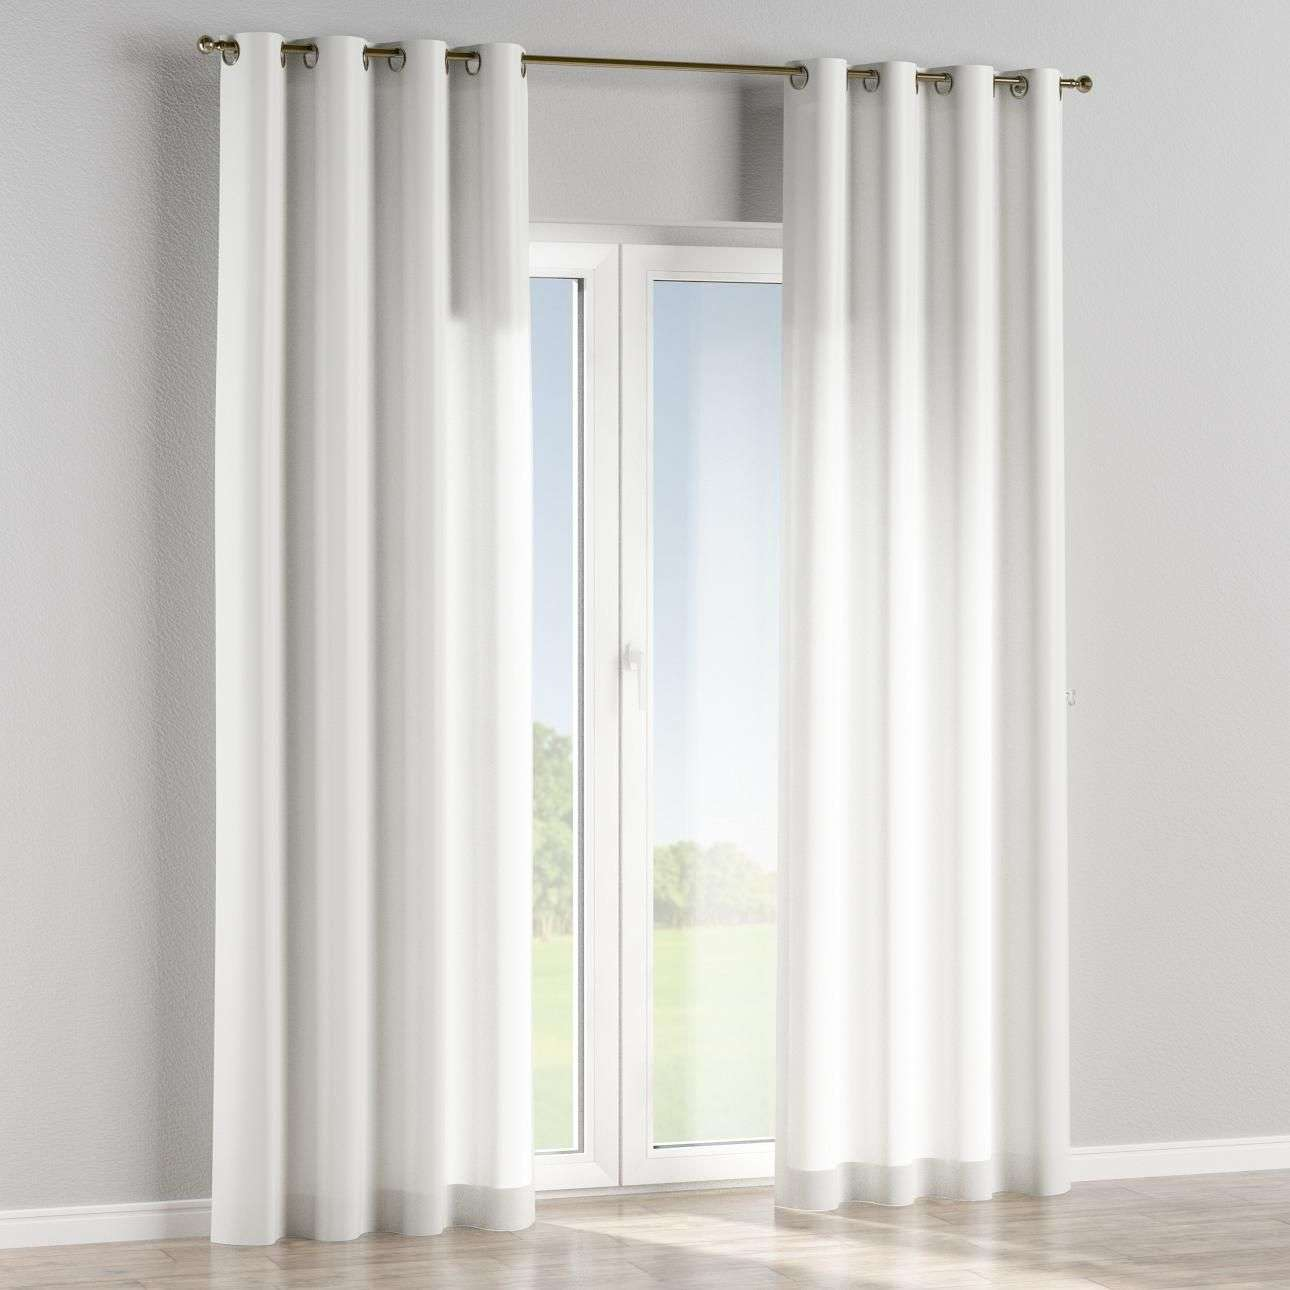 Eyelet lined curtains in collection Arcana, fabric: 102-02